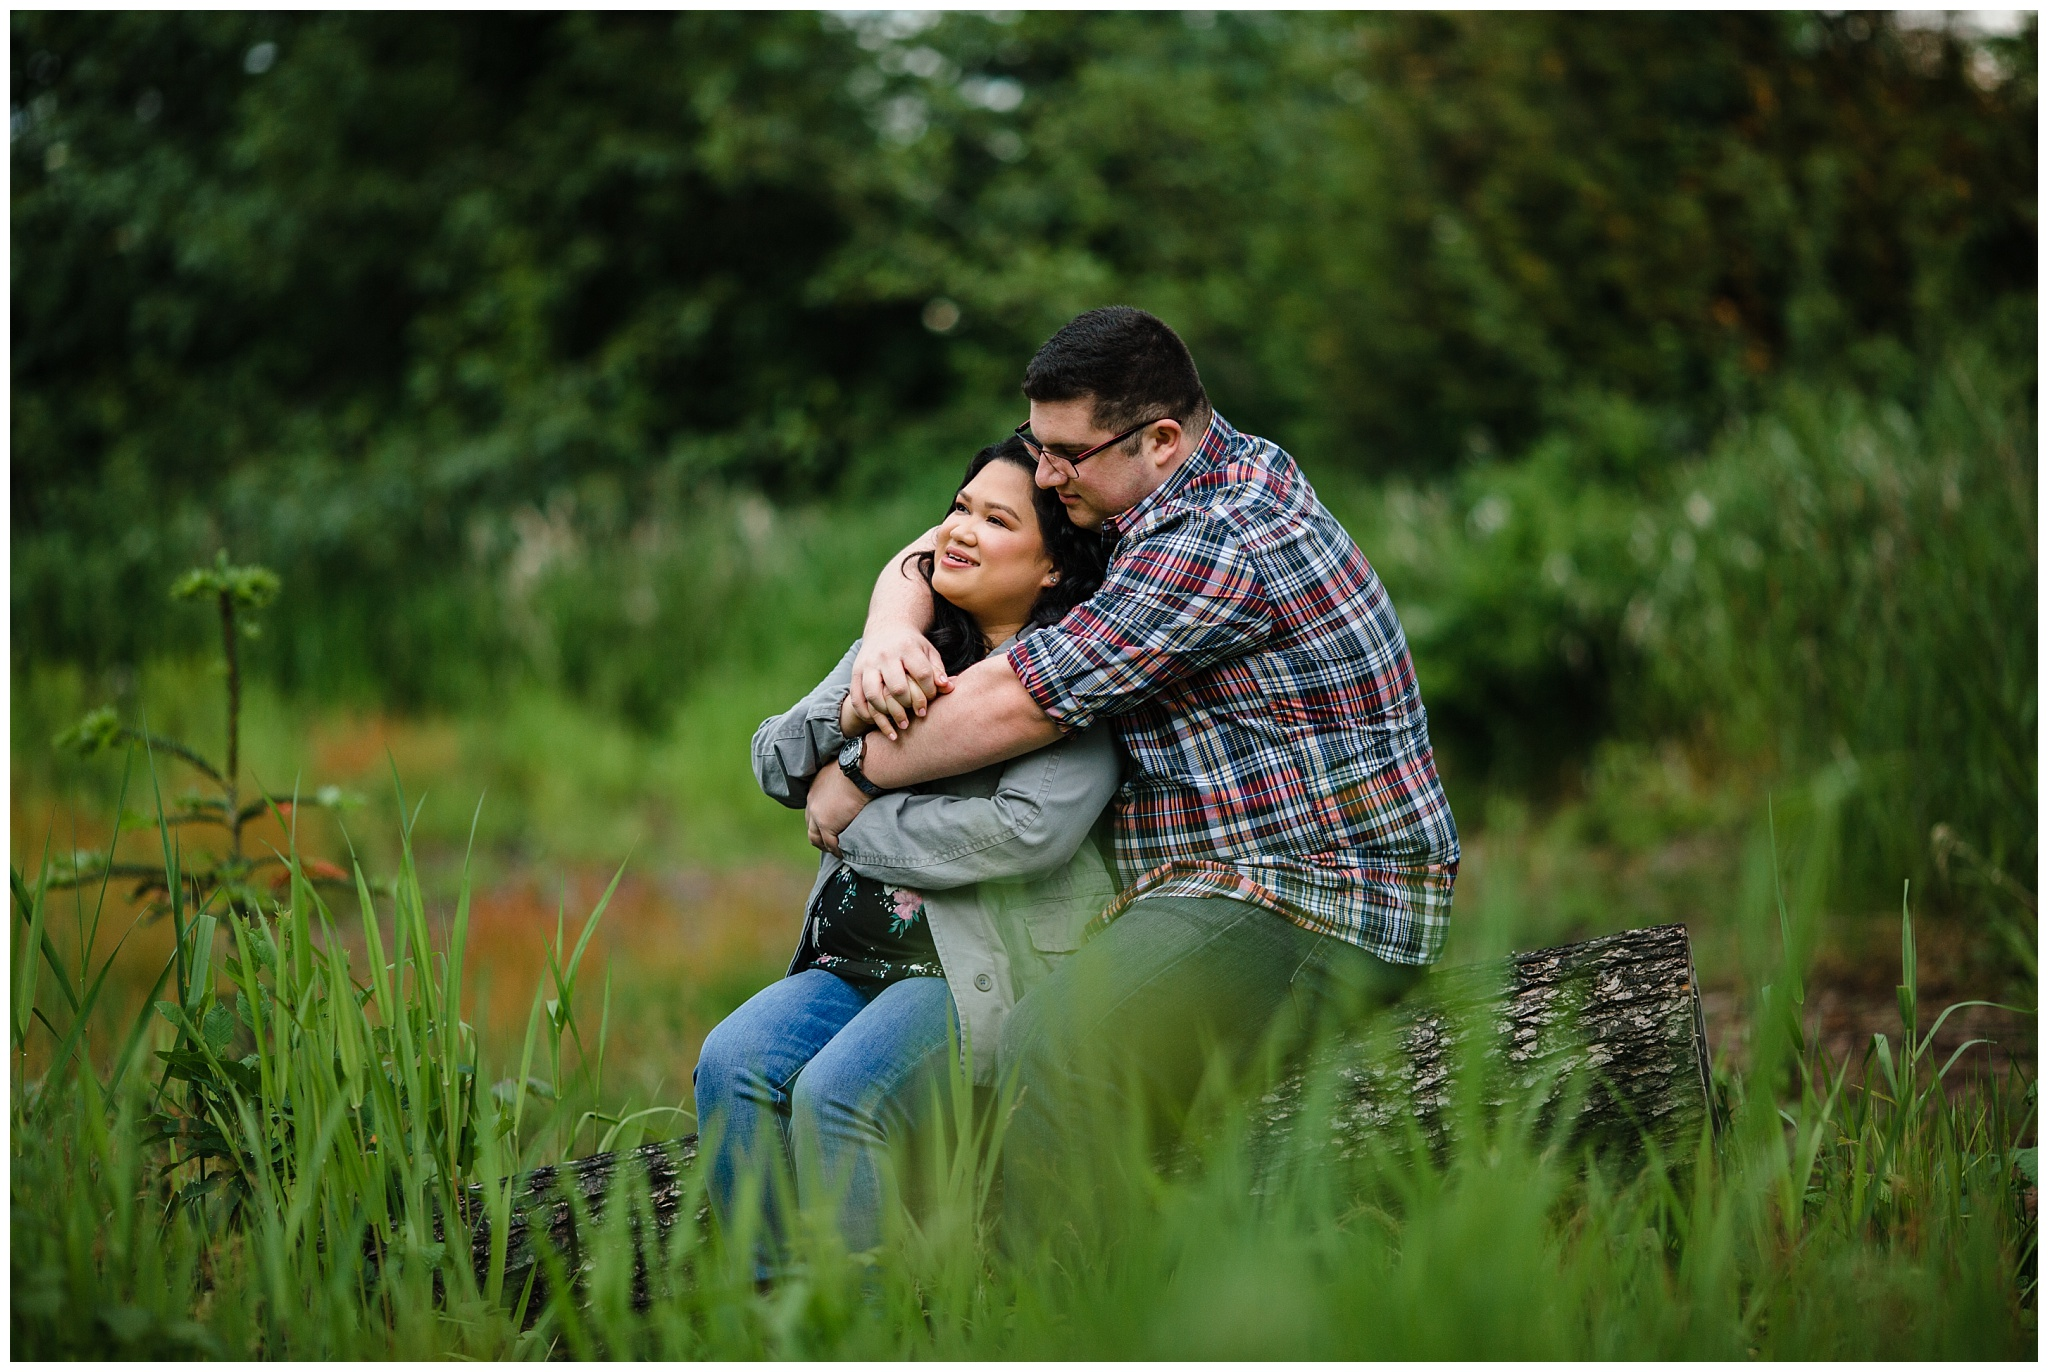 McKay Creek Park Abbotsford Spring Engagement Photos Happy Forest Trees Green Candid Fun Couple Photos_0006.jpg